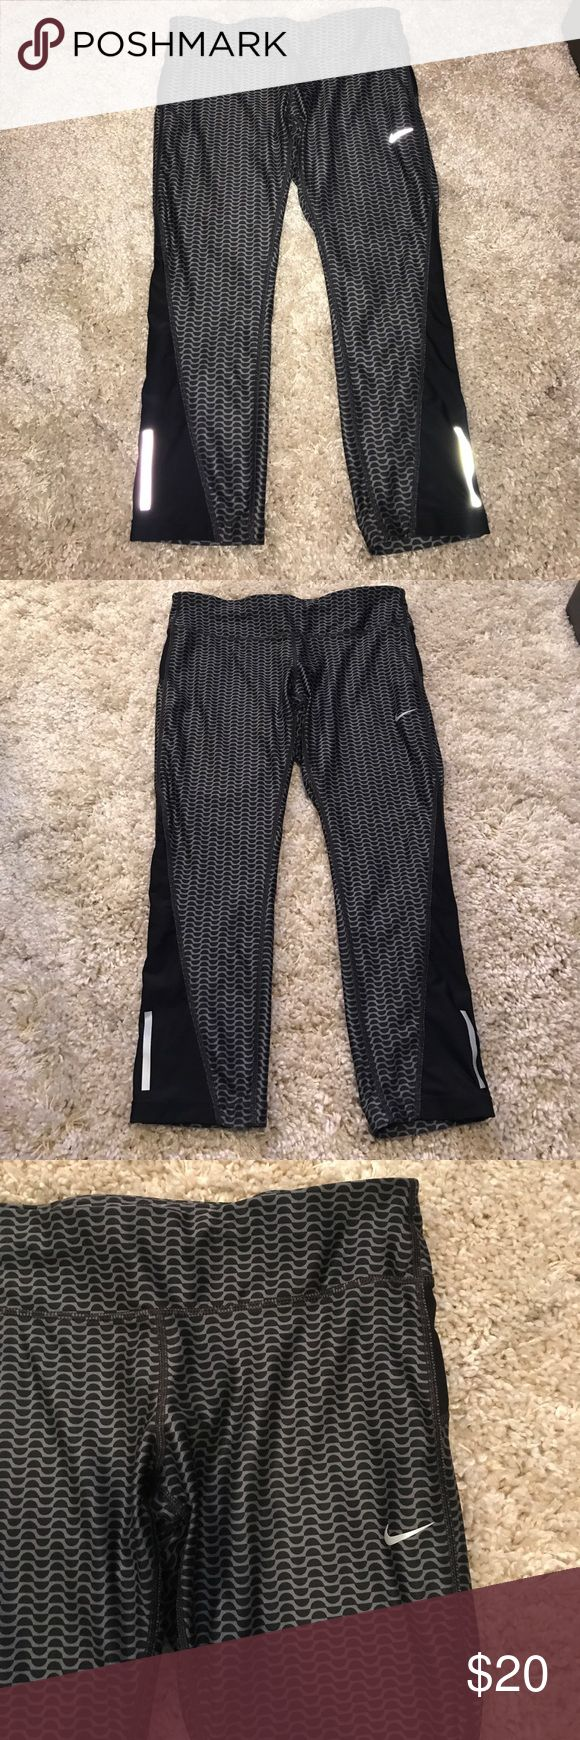 Nike Dri-Fit Capri Leggings Nike Running 👟 Large + Nike Dri-Fit Running Capris + Size large | 92% polyester & 8% spandex + Grey & black design on front & back  + Super soft & comfortable + zippered pocket on the back waistband + Only selling because I re